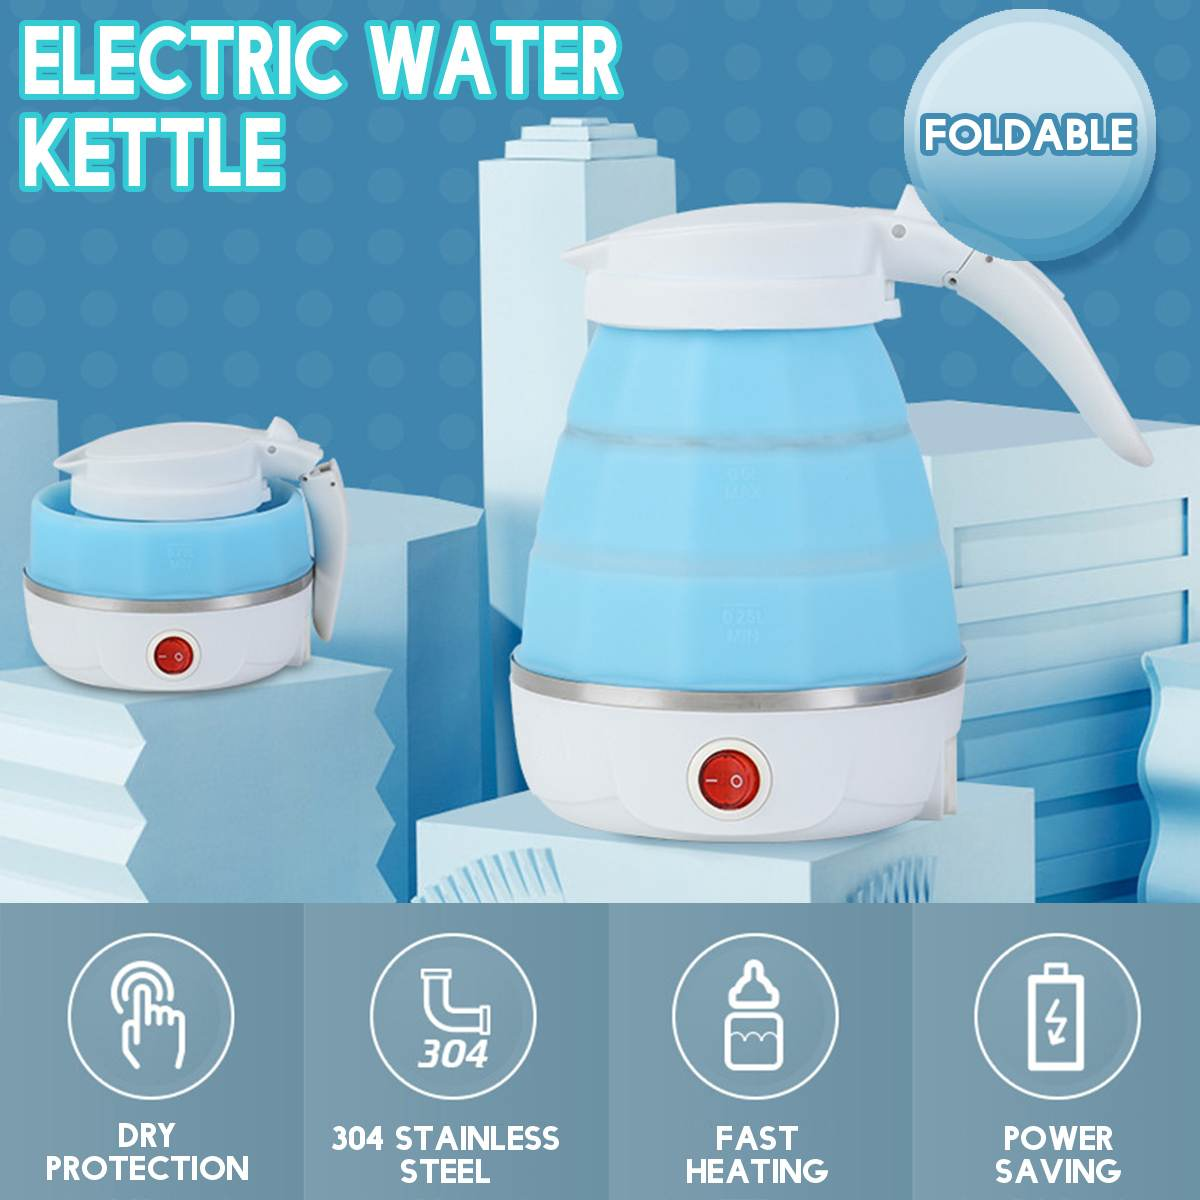 Electric Kettle Silicone Travel Mini Foldable Electric Kettles 220V 700W Portable Water Boiler Collapsible Camping Kettle 600ml